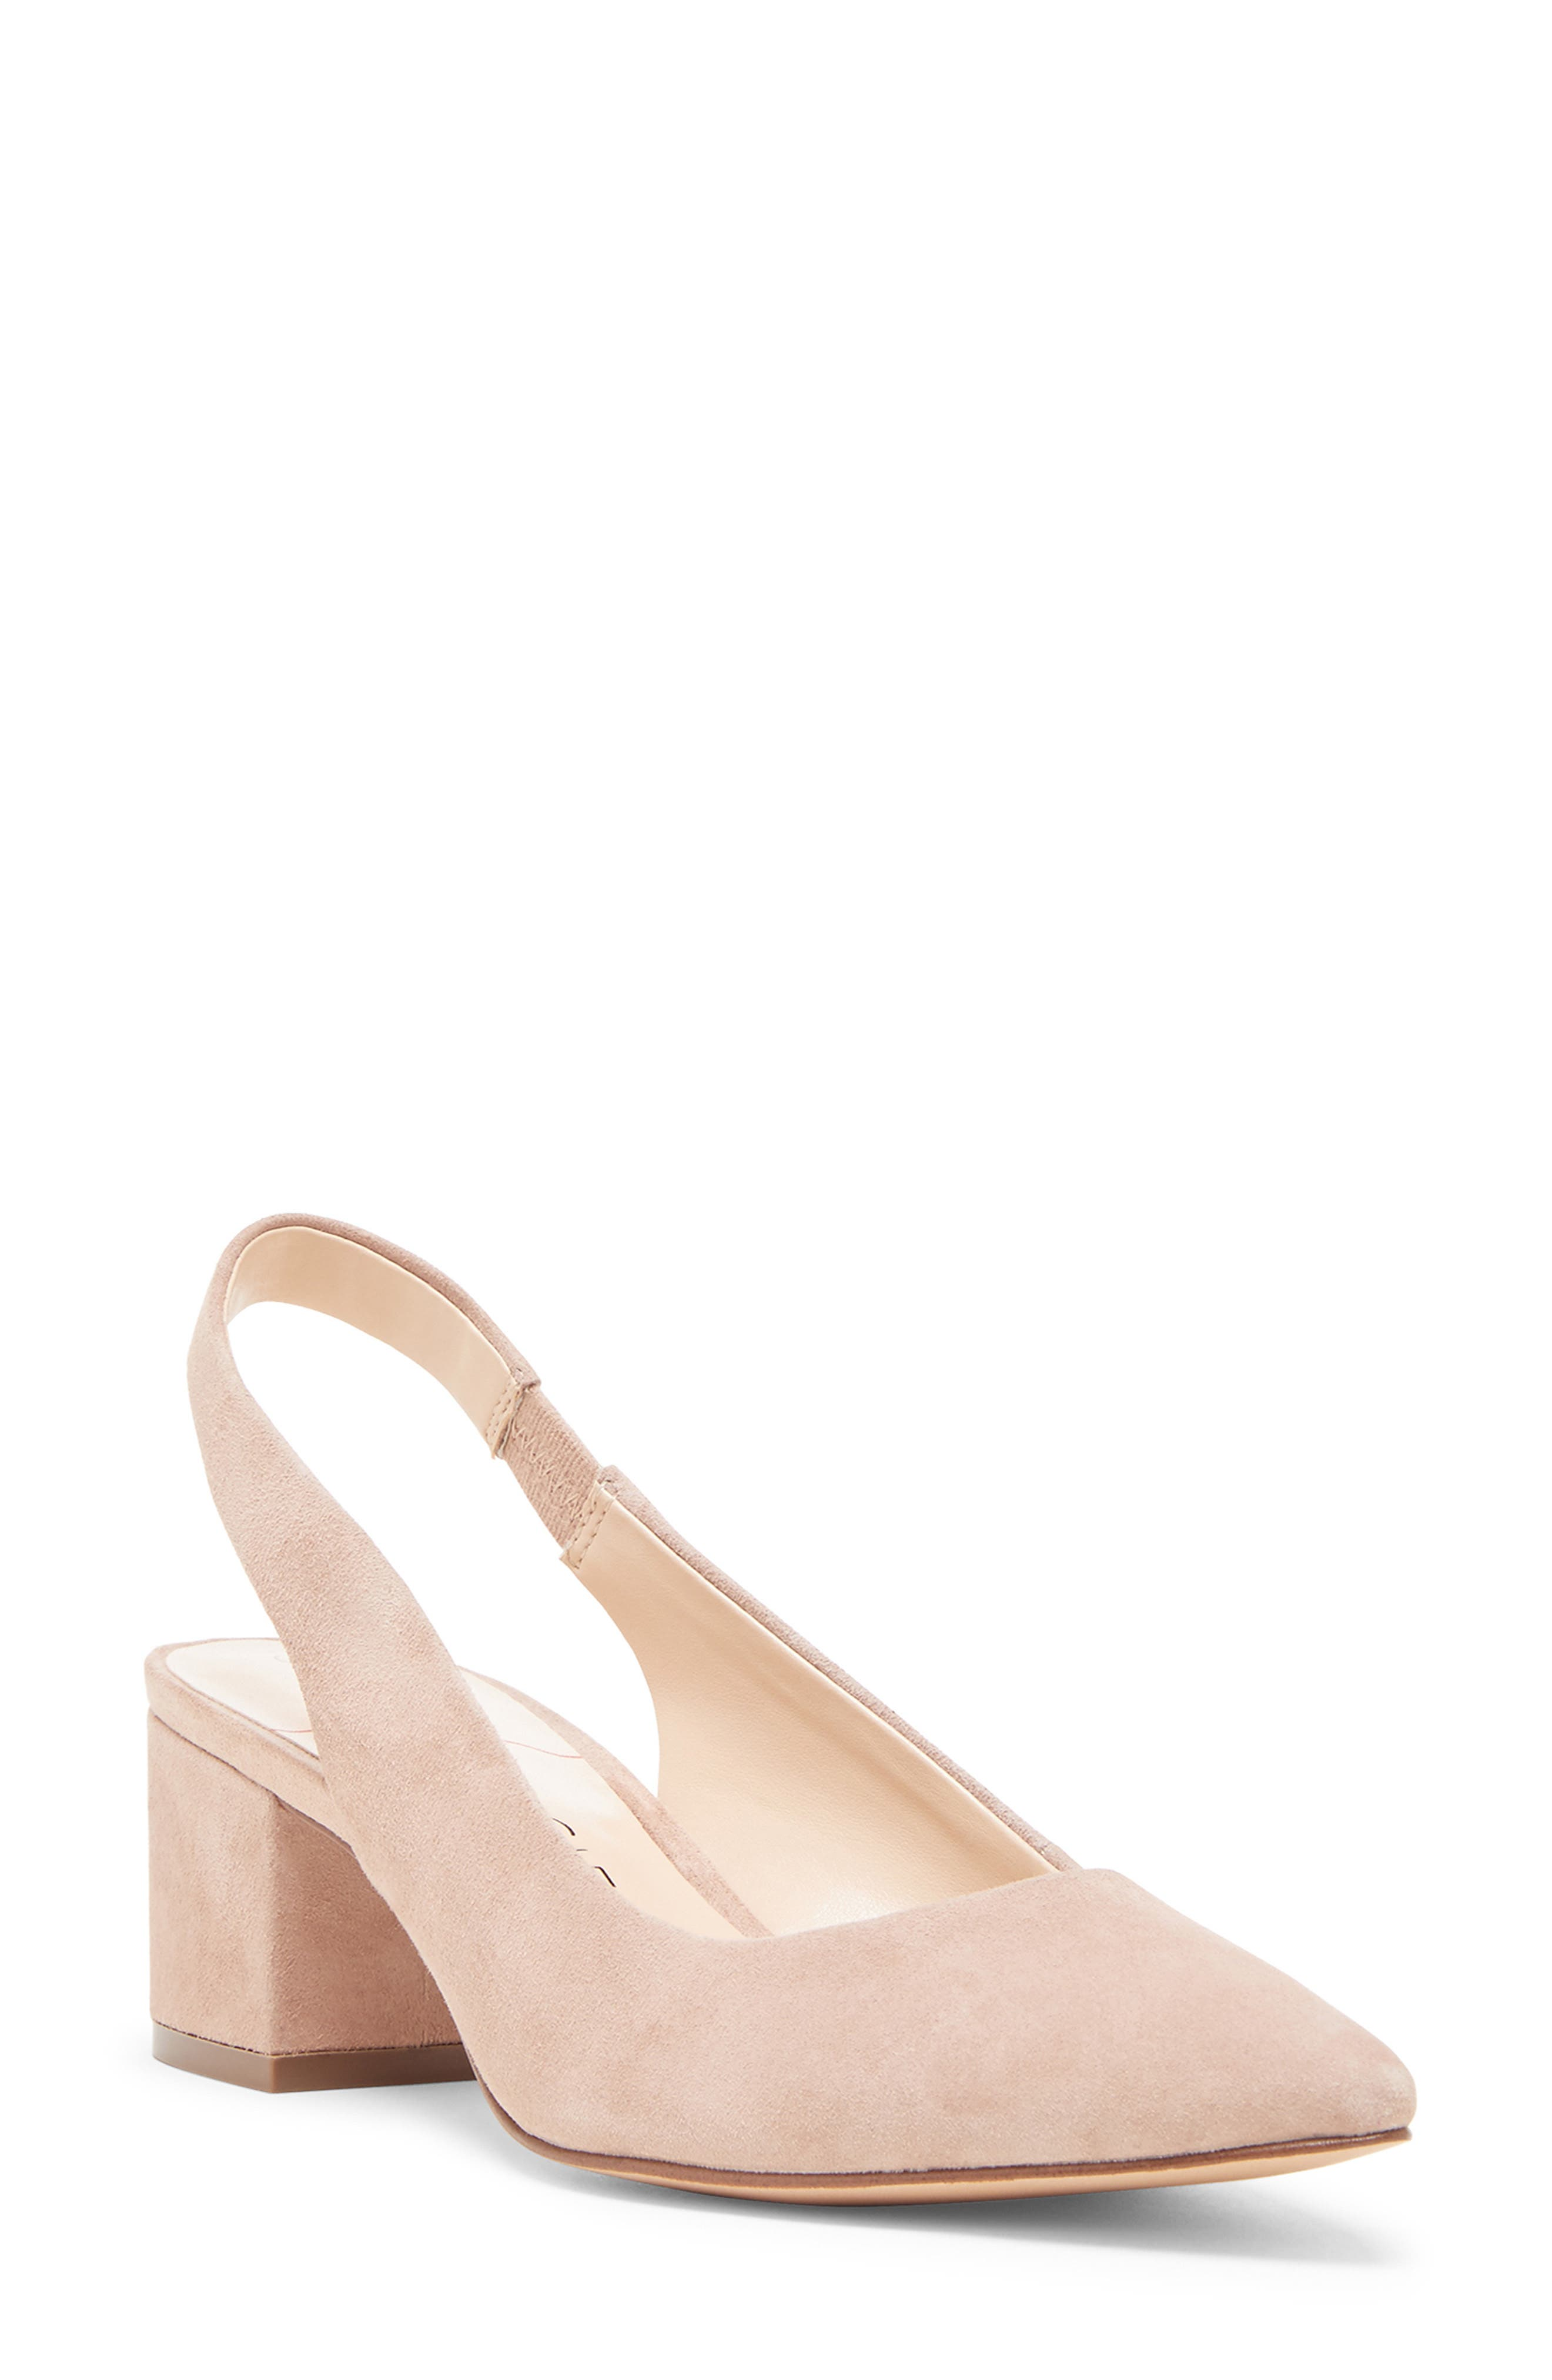 ,                             Keilinah Slingback Pointy Toe Pump,                             Main thumbnail 1, color,                             DUSTY ROSE SUEDE